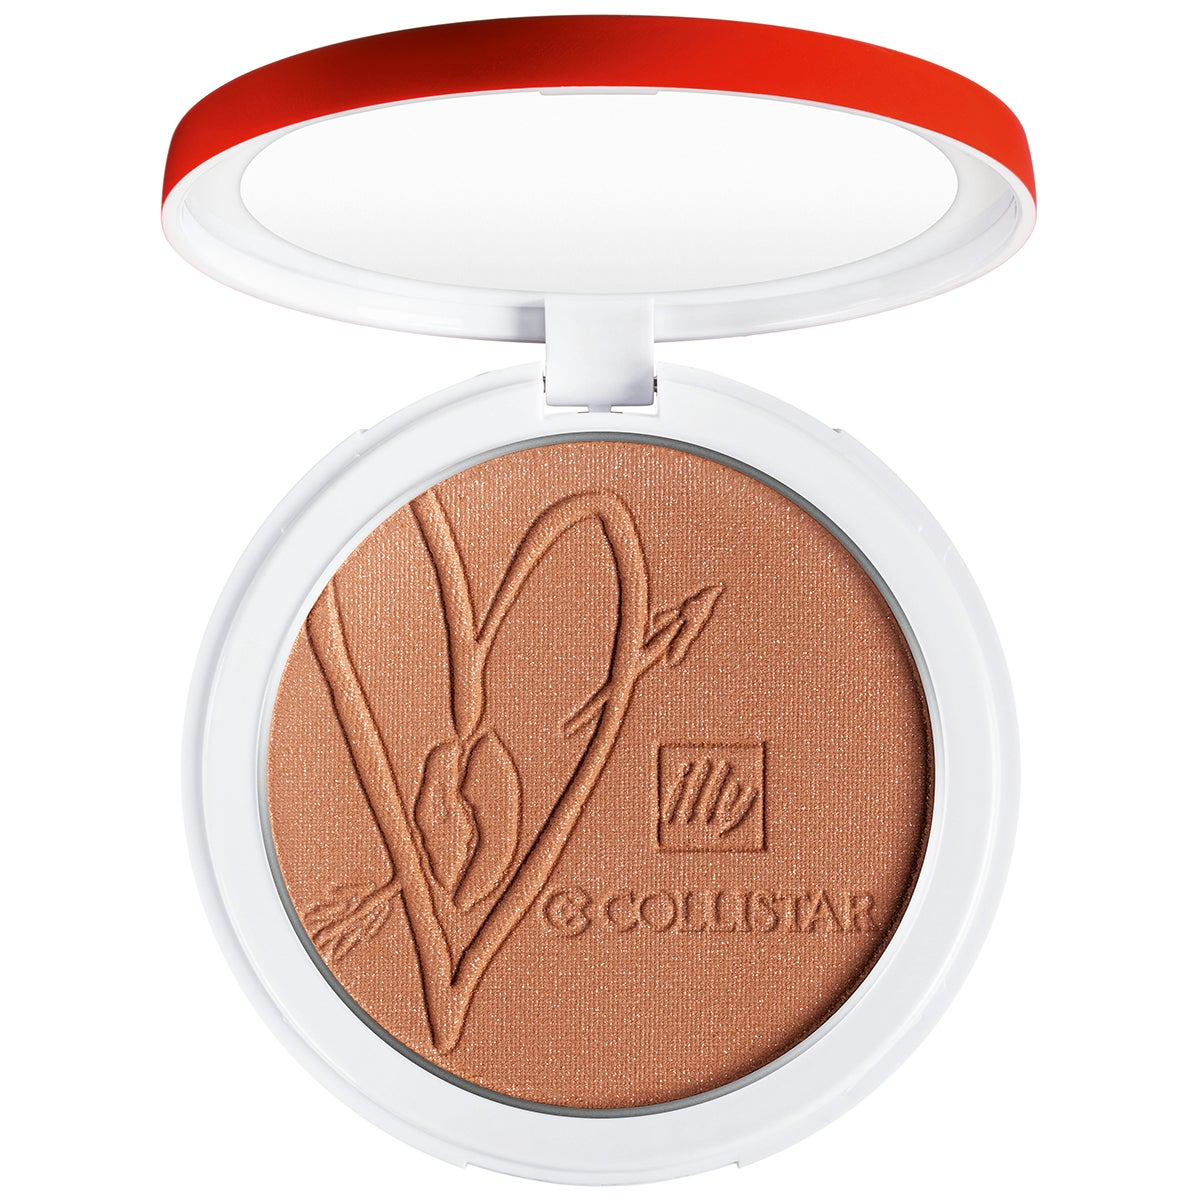 Collistar Sculpting Effect Bronzing Powder